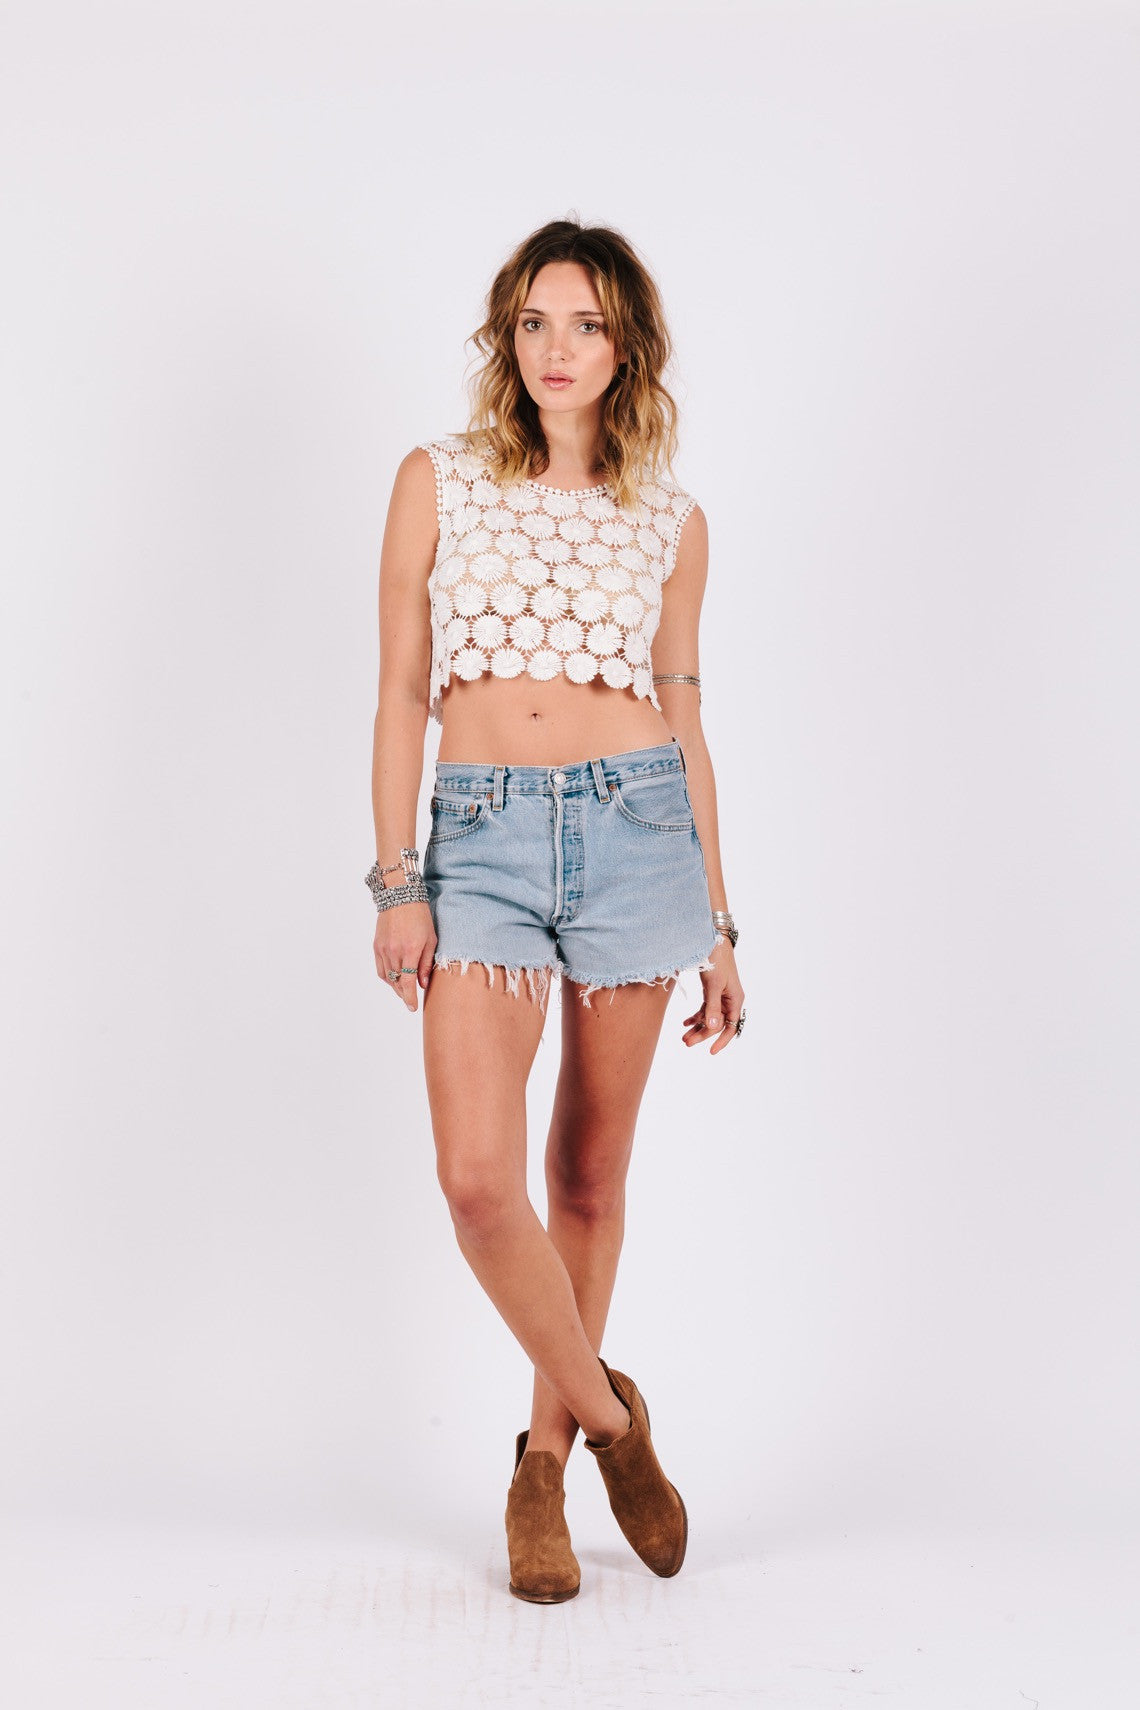 "Lazy Daisy Crop Top-Women - Apparel - Shirts - Blouses-Product Details This piece is 100% cotton Unlined, crop style top Model is wearing a size S Measures approximately 16"" from top of shoulder to bottom hem Model is 5'11"" with 34"" bust, 24"" waist, and 35"" hips All sale items are Final Sale Easy Measure Conversion XS/0 S/1 M/2 L/3 US 0/2 2/4 6/8 8/10 AUS 4/6 6/8 10/12 12/14 BRAZIL 34/36 36/38 40/42 42/44 CHINA 76a/80a 80a/84a 88a/92a 92a/95a EUP 32/34 34/36 38/40 40/42 JAP 5/7 7/9 11/13 13/15 R"